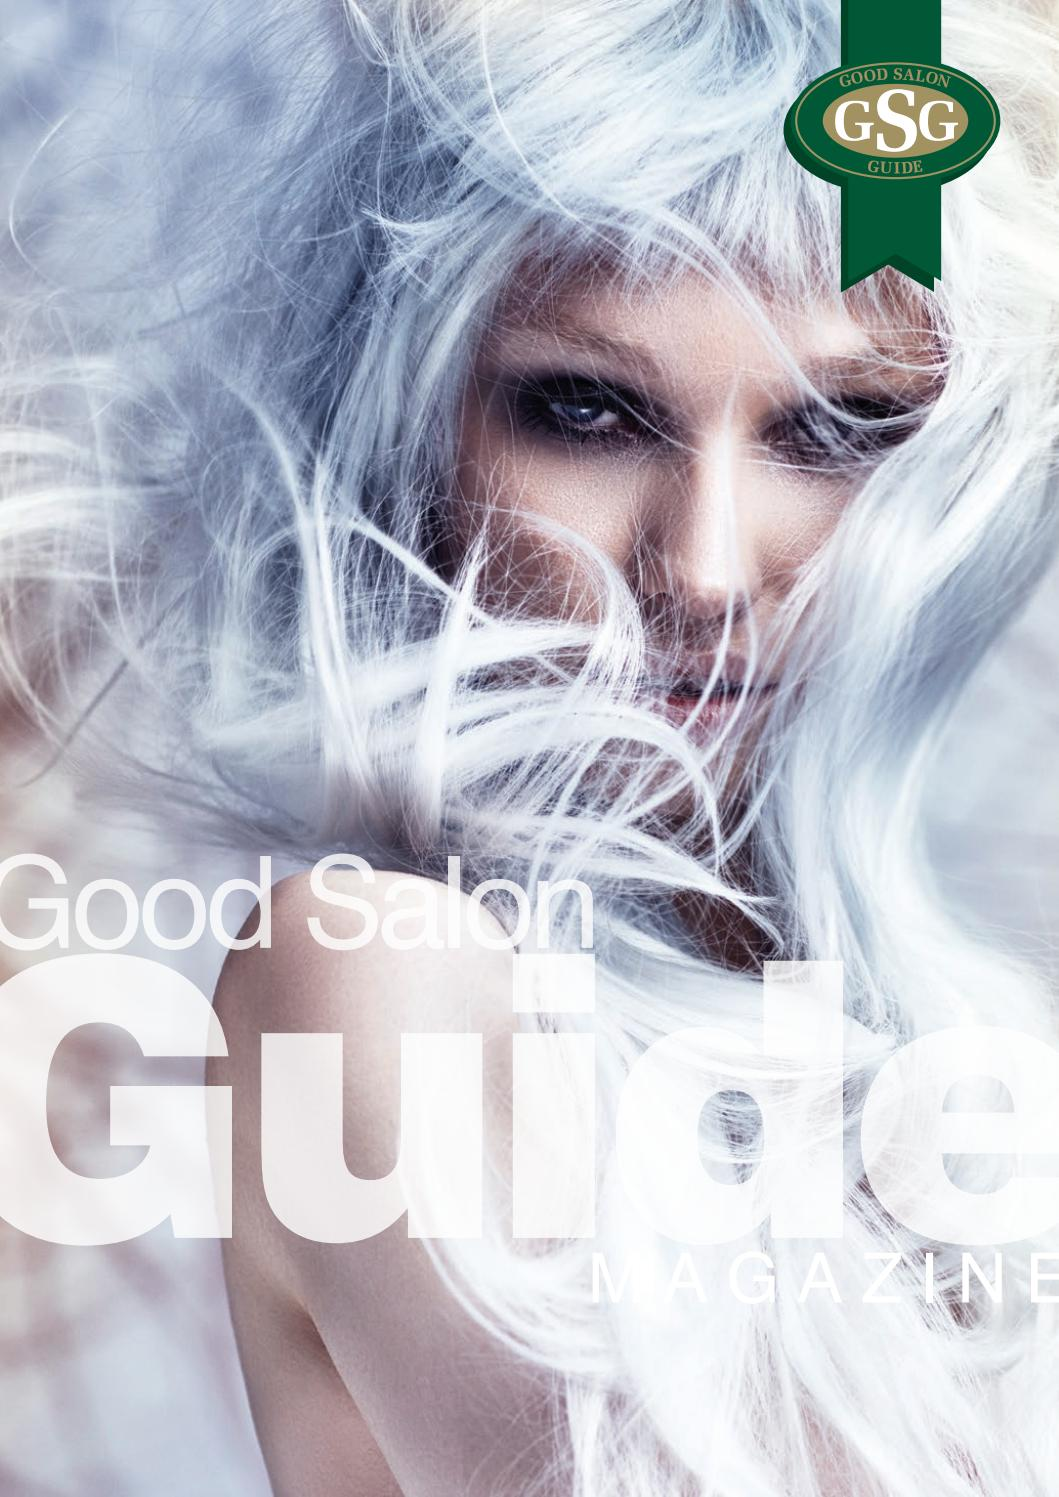 the latest 269e0 d8da2 Good Salon Guide Spring/Summer 2019 Magazine by Good Salon ...